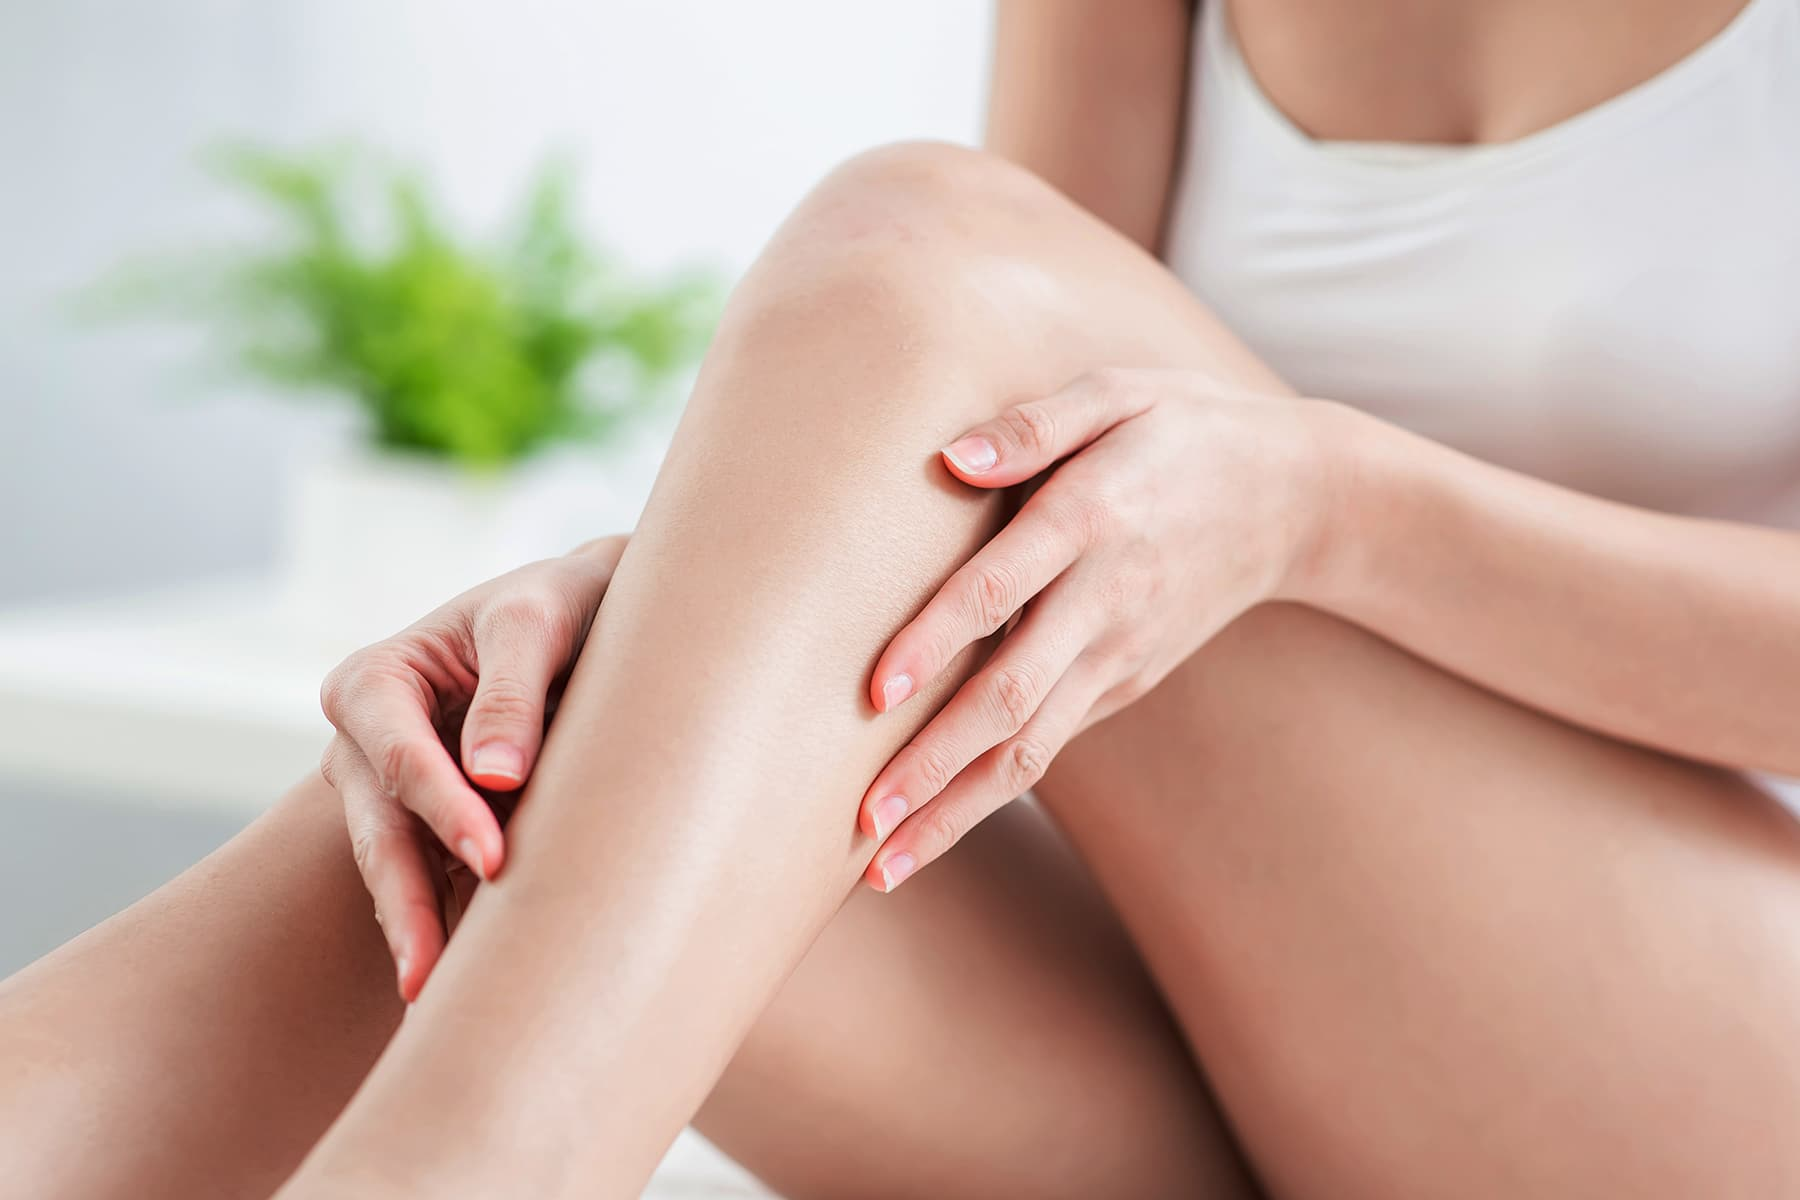 Can You Get Rid Of Cellulite Healthy Treatments And What To Avoid